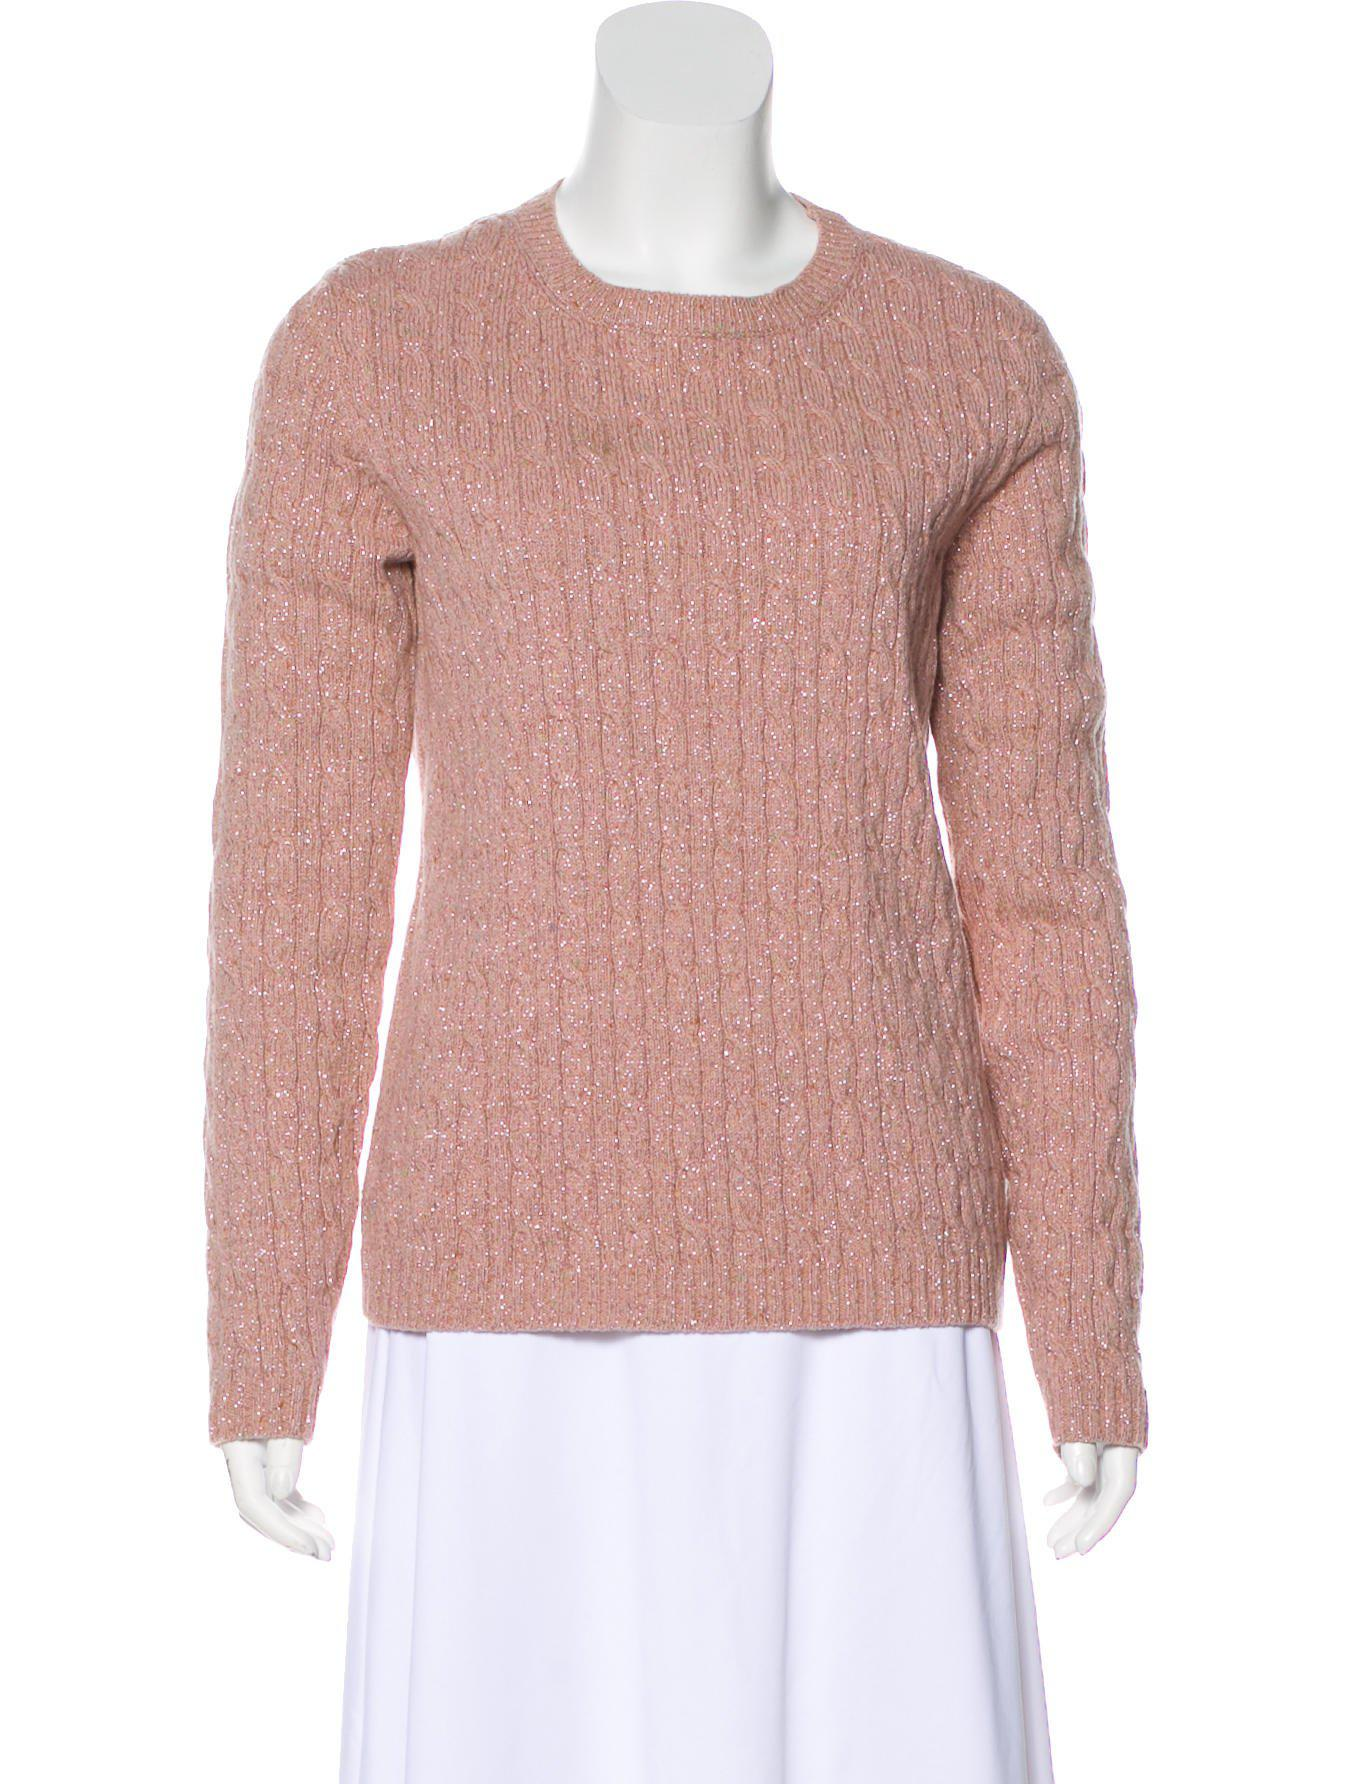 c6ac9dcb51ed Lyst - Red Valentino Wool Cable Knit Sweater in Pink